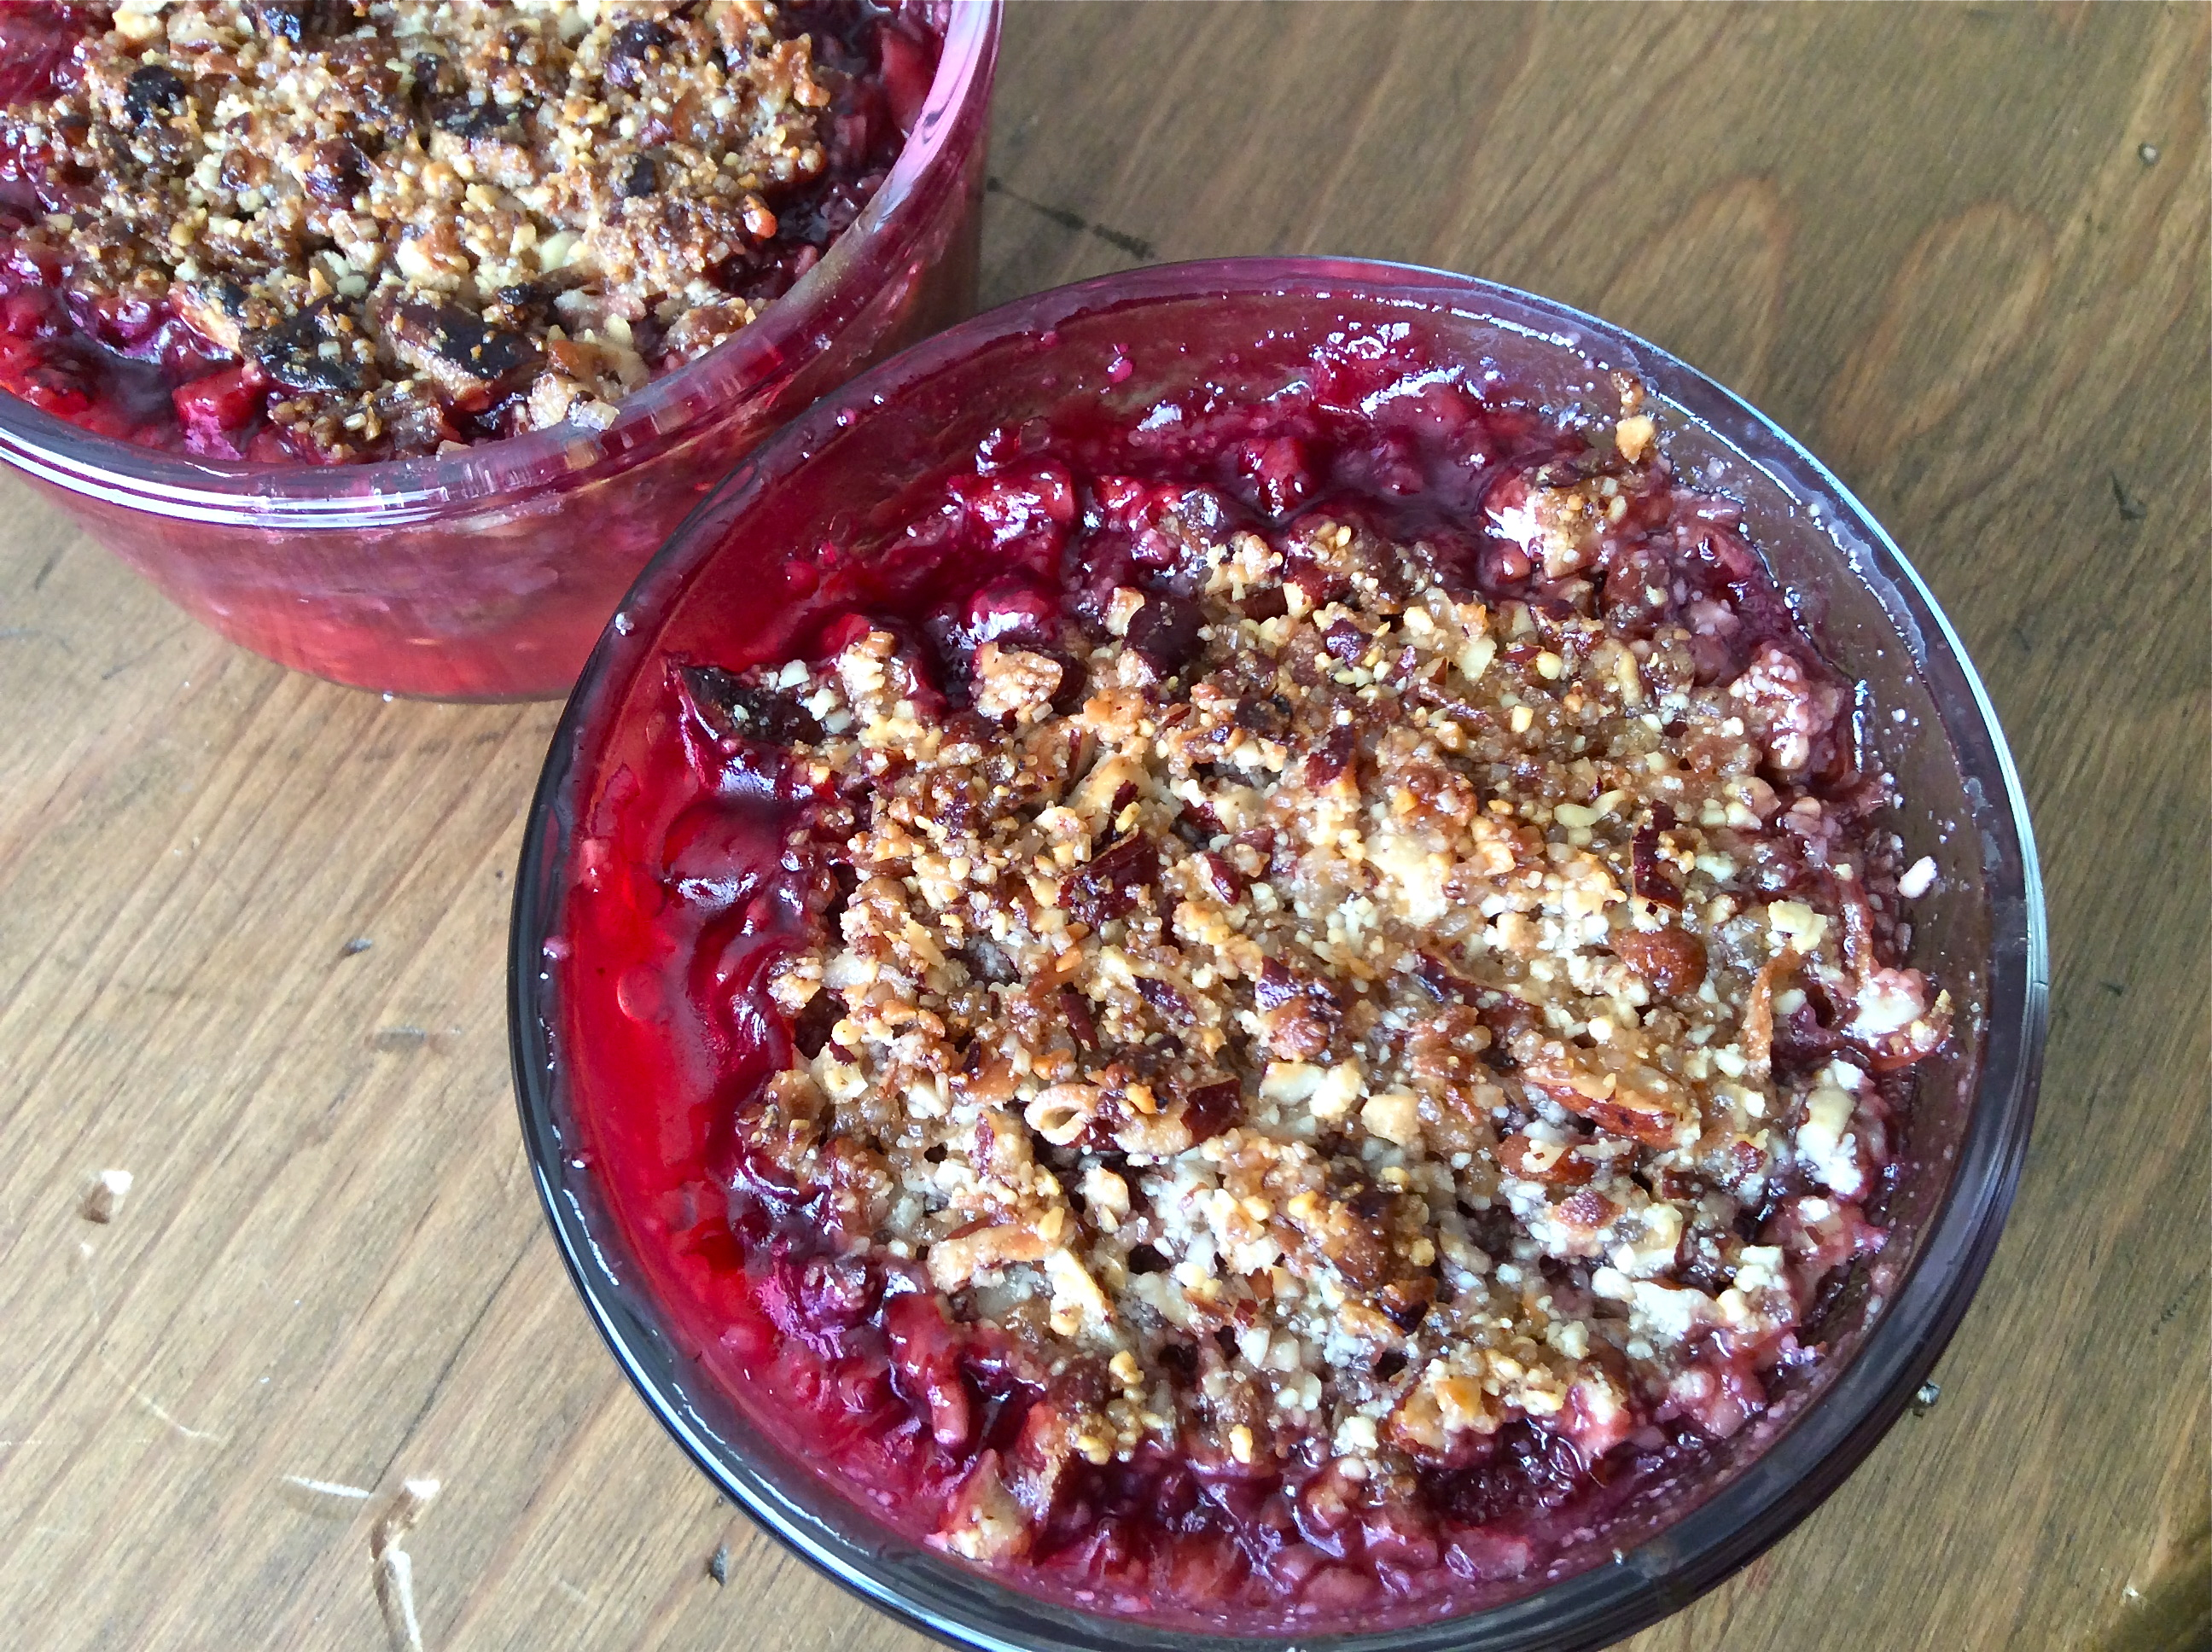 Rhubarb and Raspberry Crumble - Paleo-style